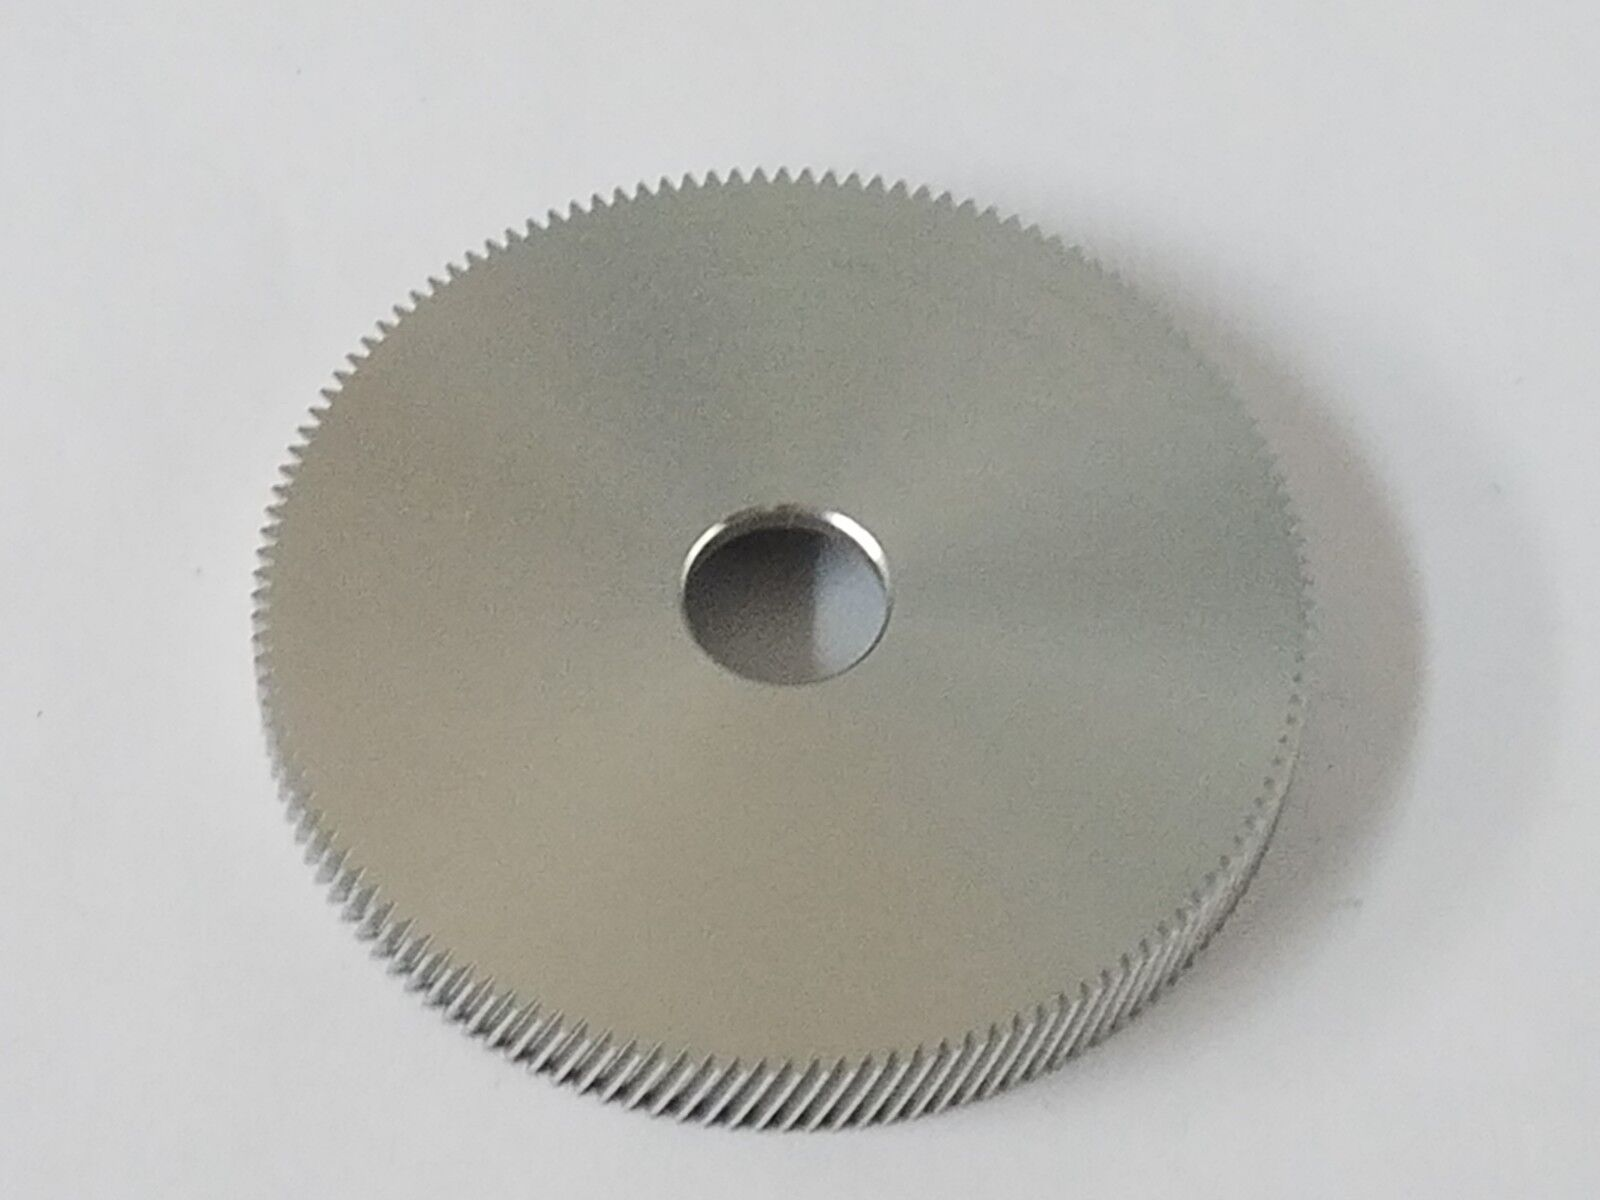 1 Shimano PartBNT 4837 Drive Gear Fits  Metanium META-L ...  after-sale protection